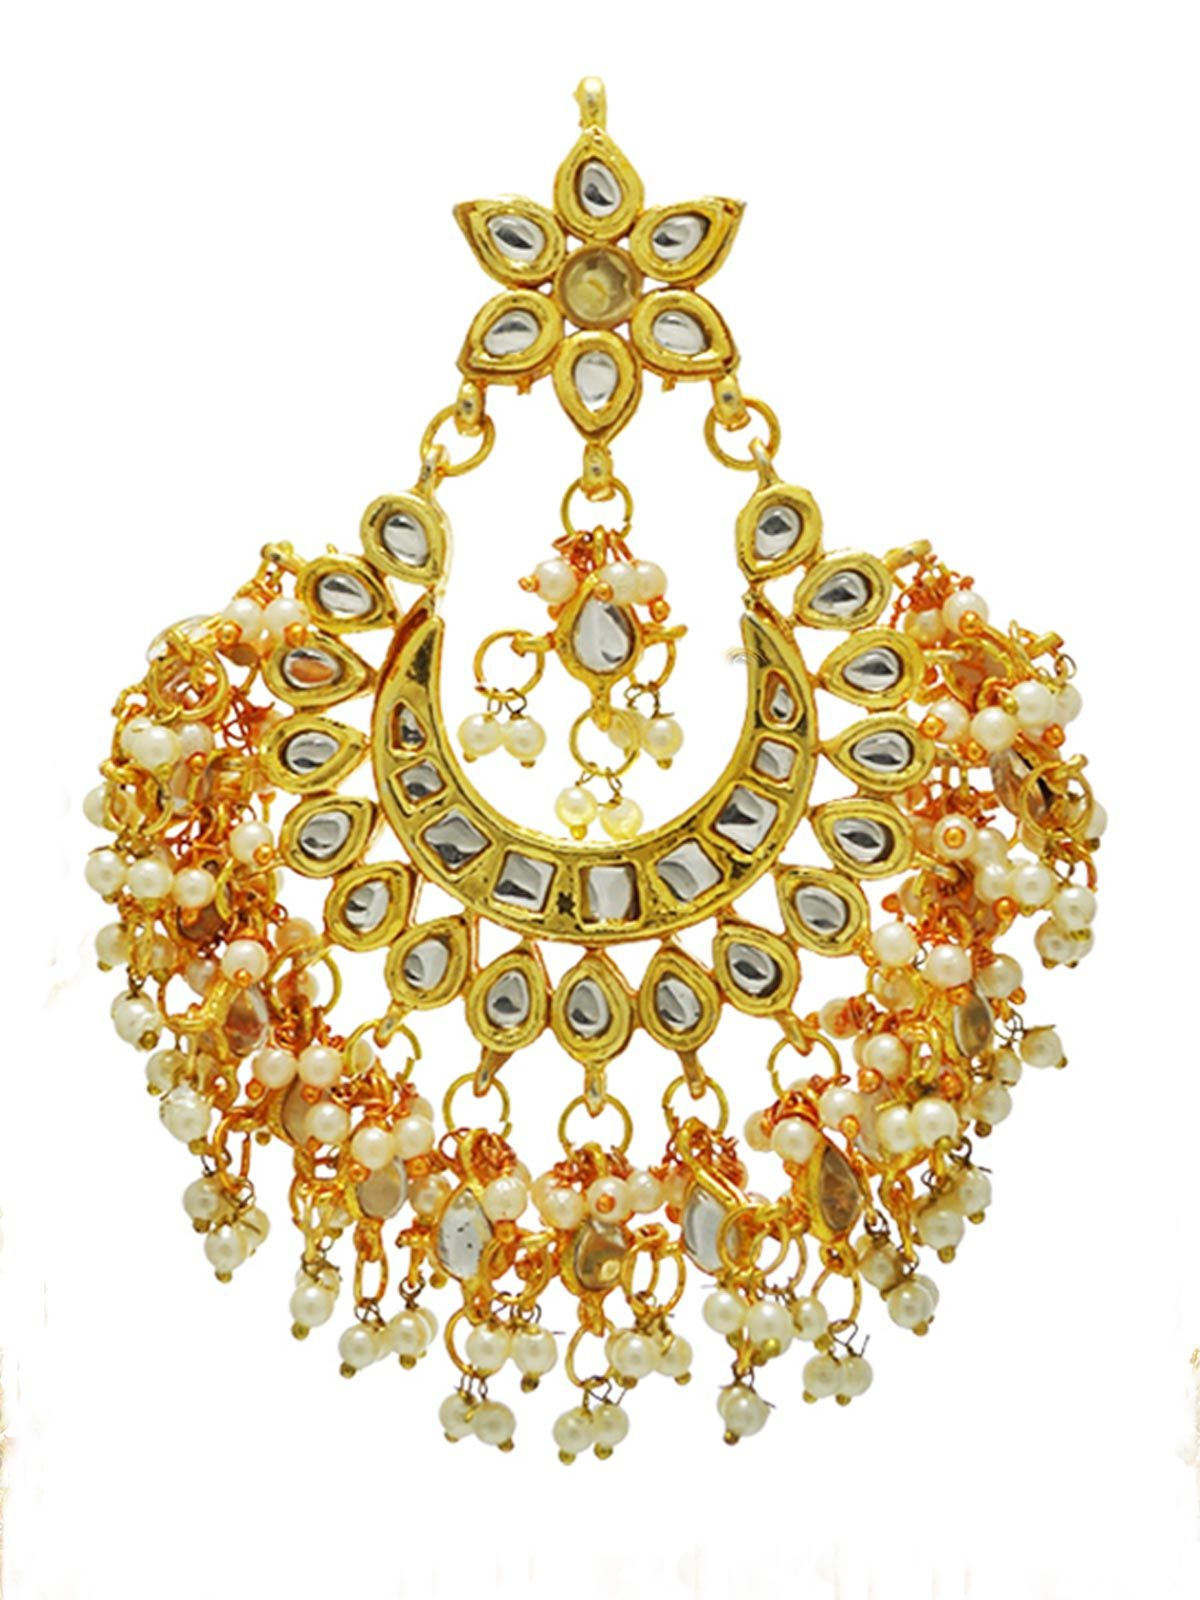 Kundan and Pearl Bridal Chandbali earrings